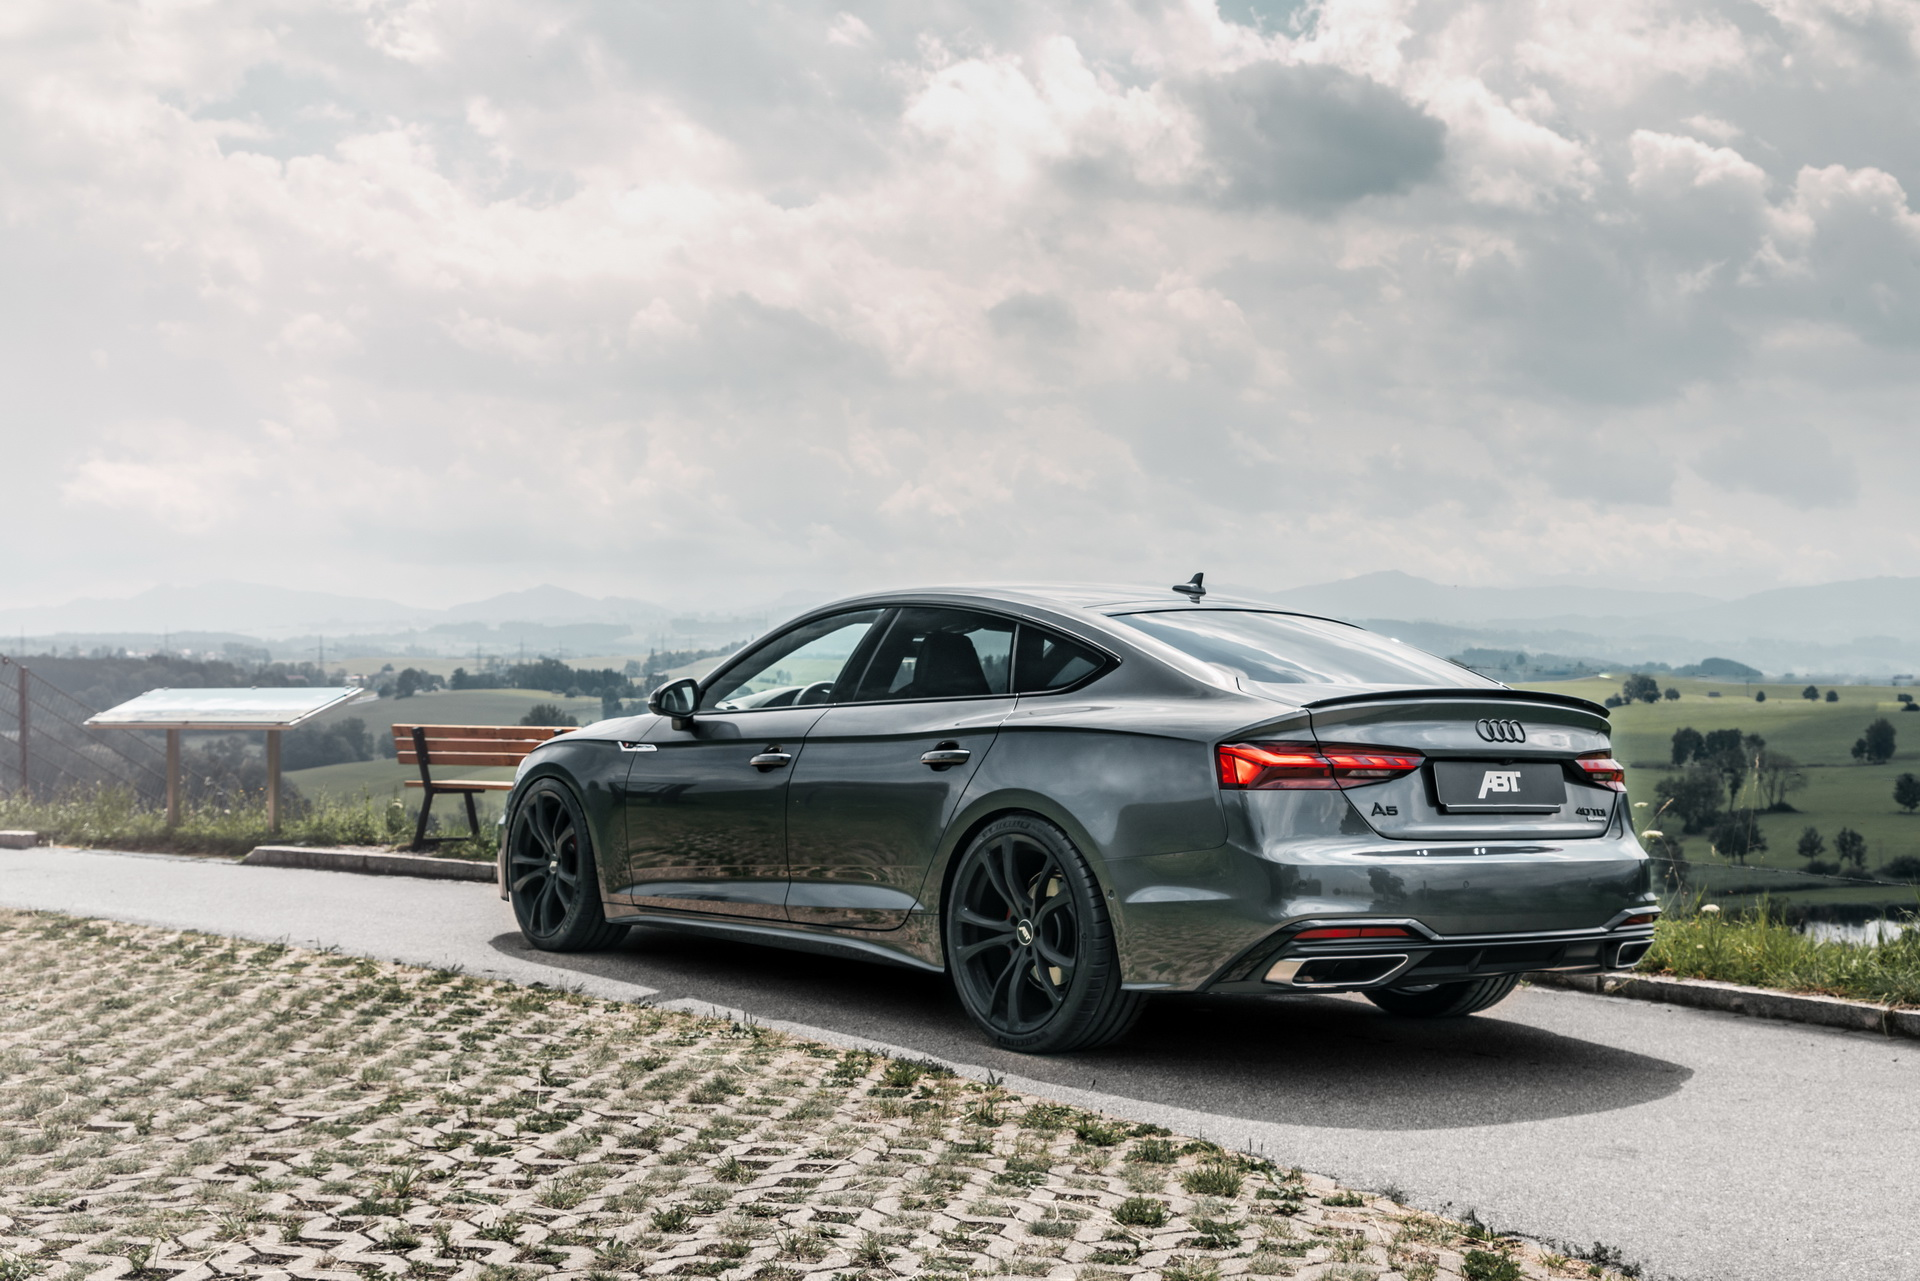 2020-audi-a5-facelift-abt-tuning-5